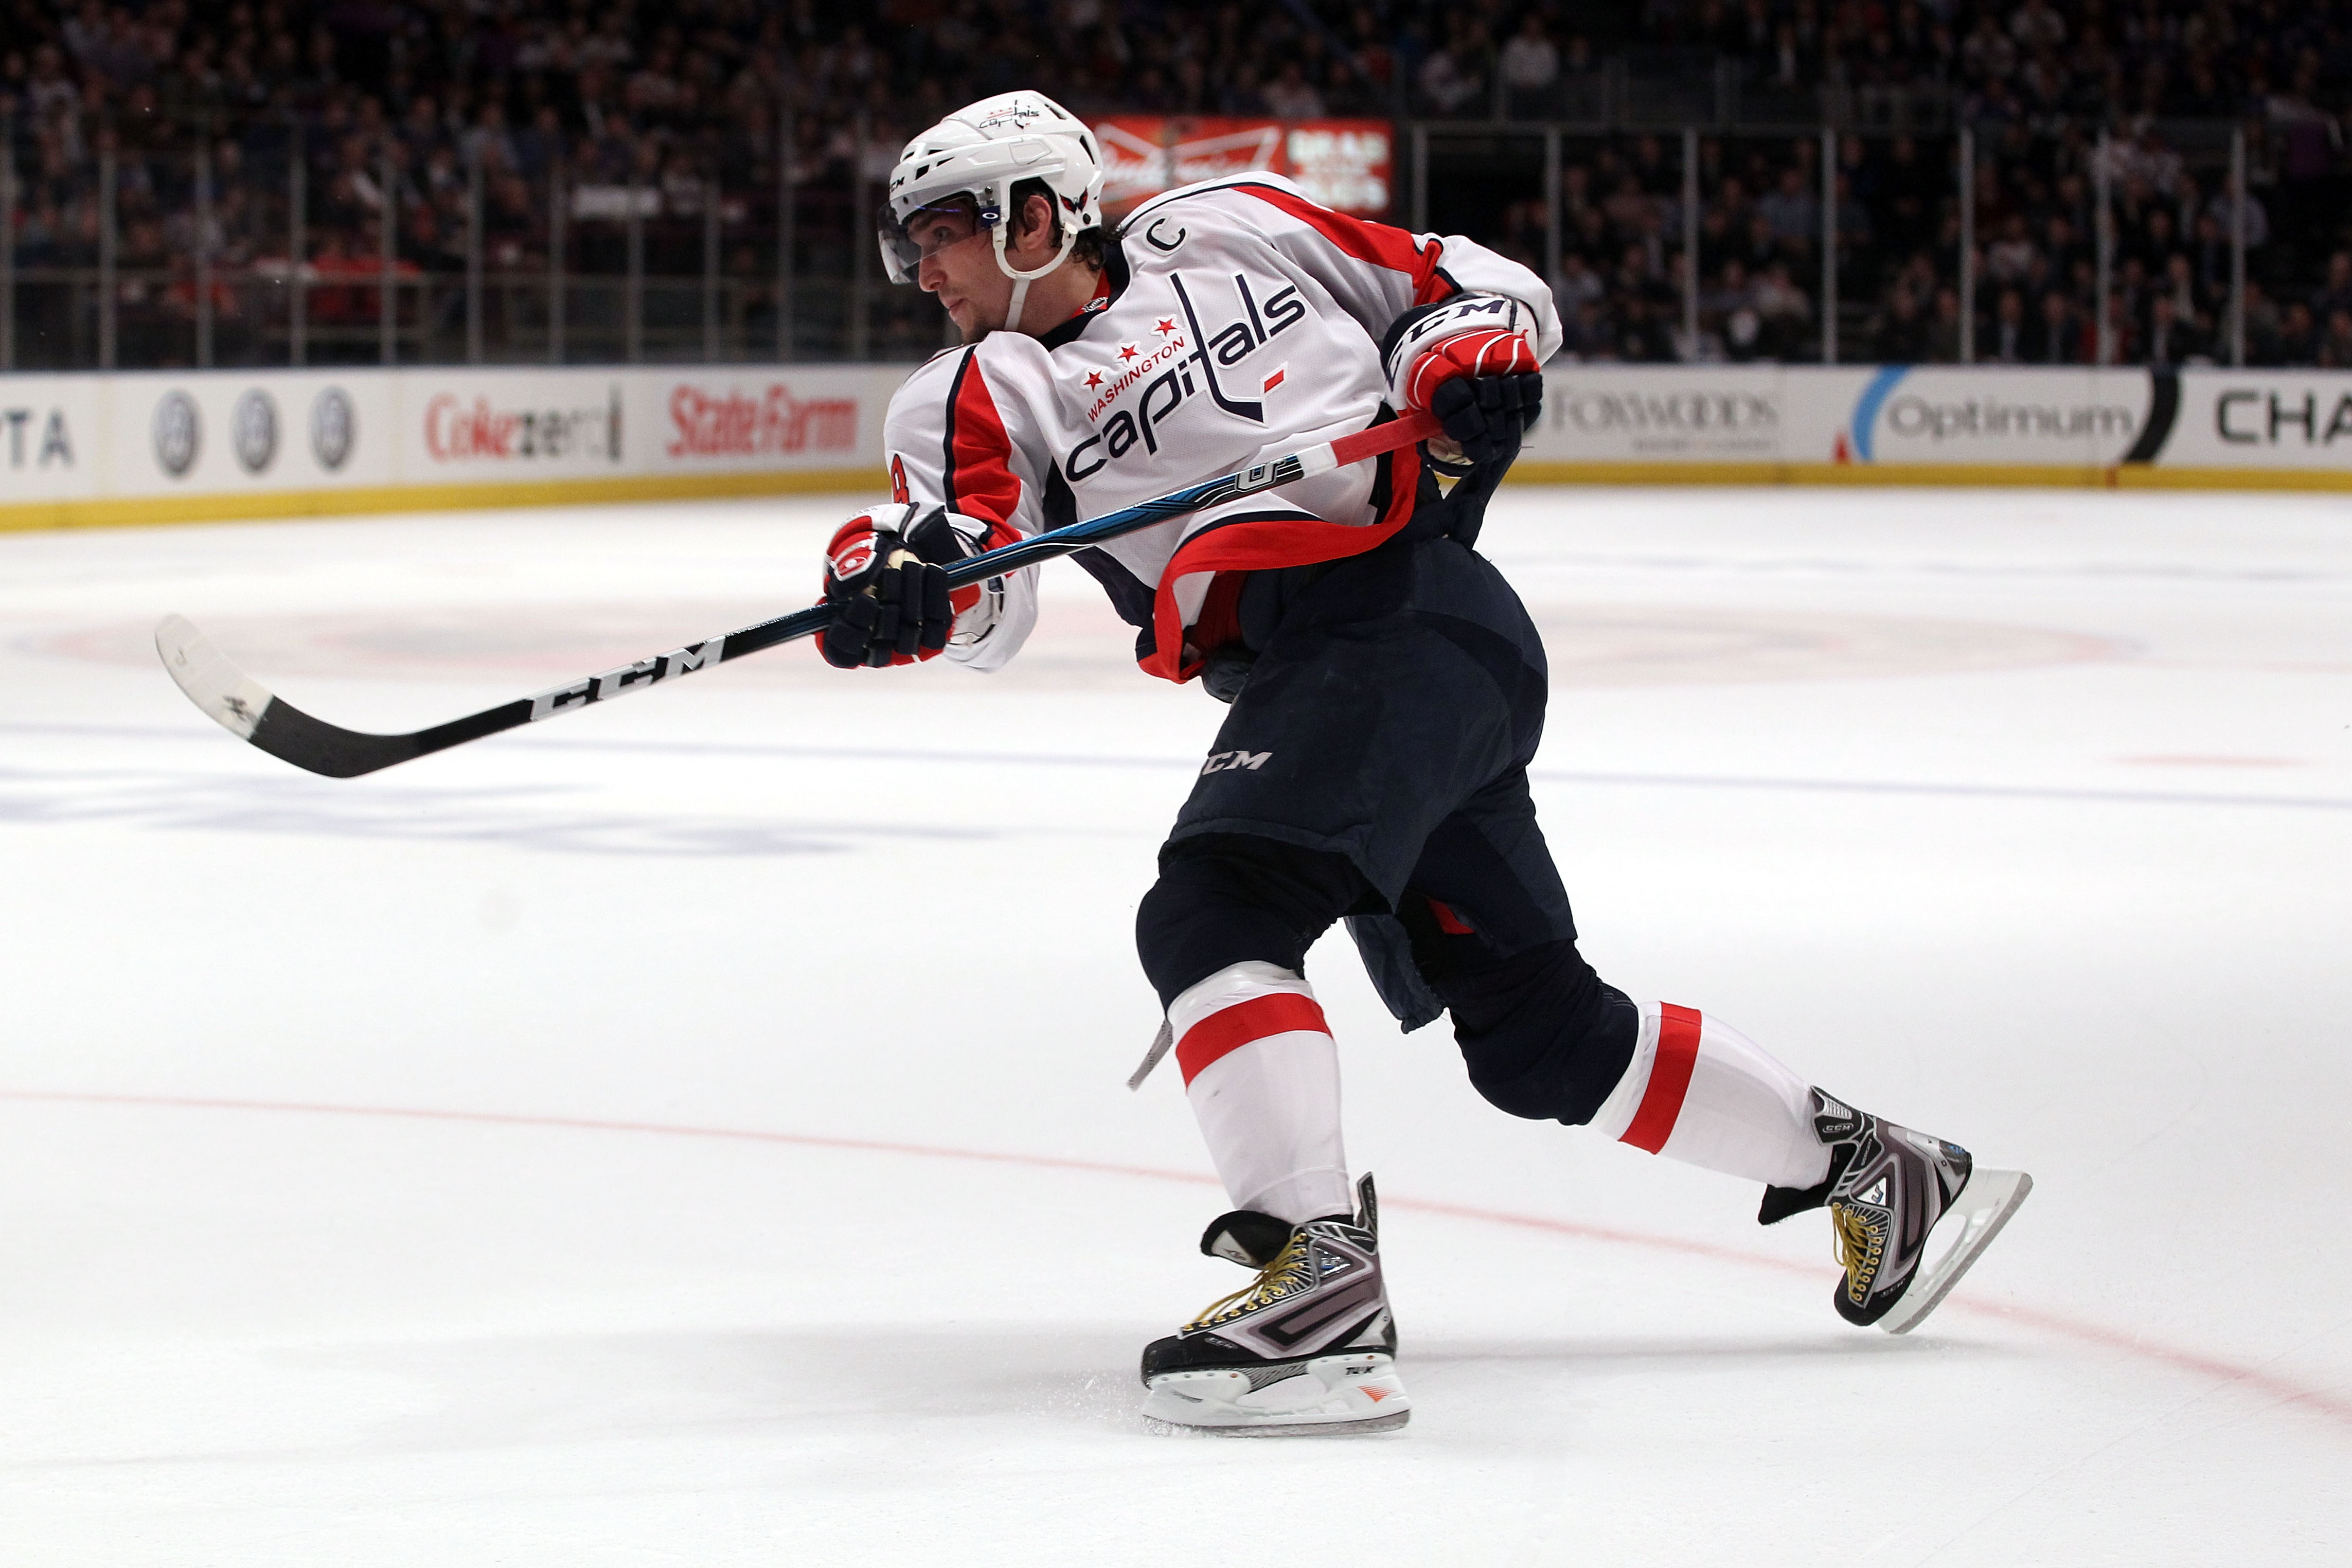 NEW YORK, NY - APRIL 20:  Alex Ovechkin #8 of the Washington Capitals follows through on a shot attempt against the New York Rangers in Game Four of the Eastern Conference Quarterfinals during the 2011 NHL Stanley Cup Playoffs at Madison Square Garden on